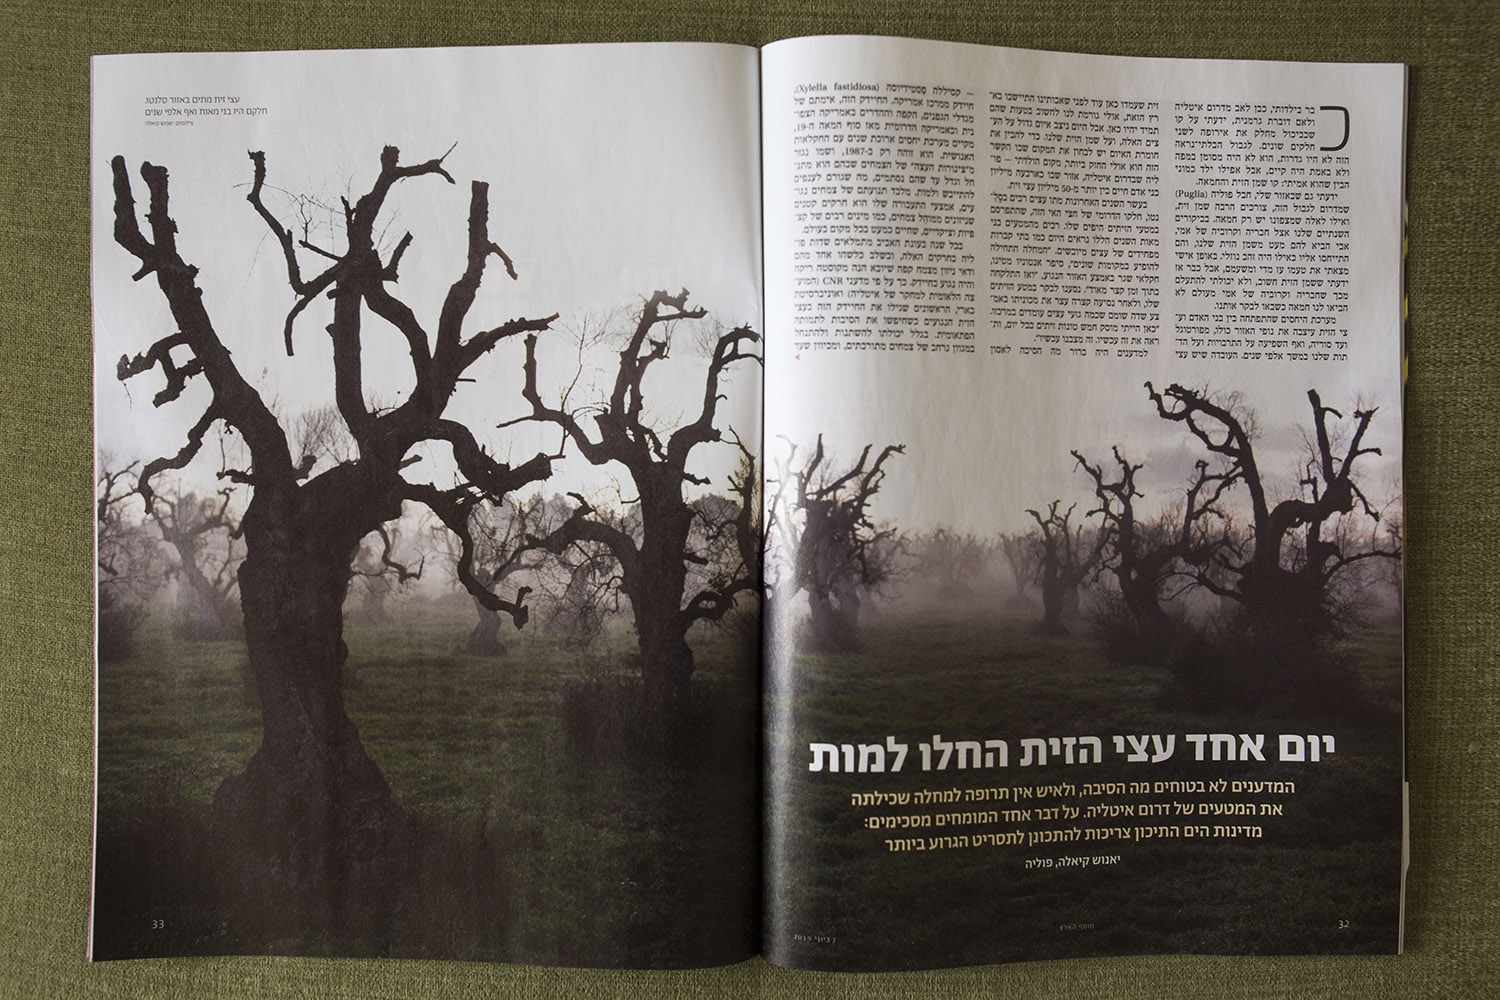 Ha'aretz weekend magazine: The olive trees of Puglia in the time of Xylella. (June 2019) link to story